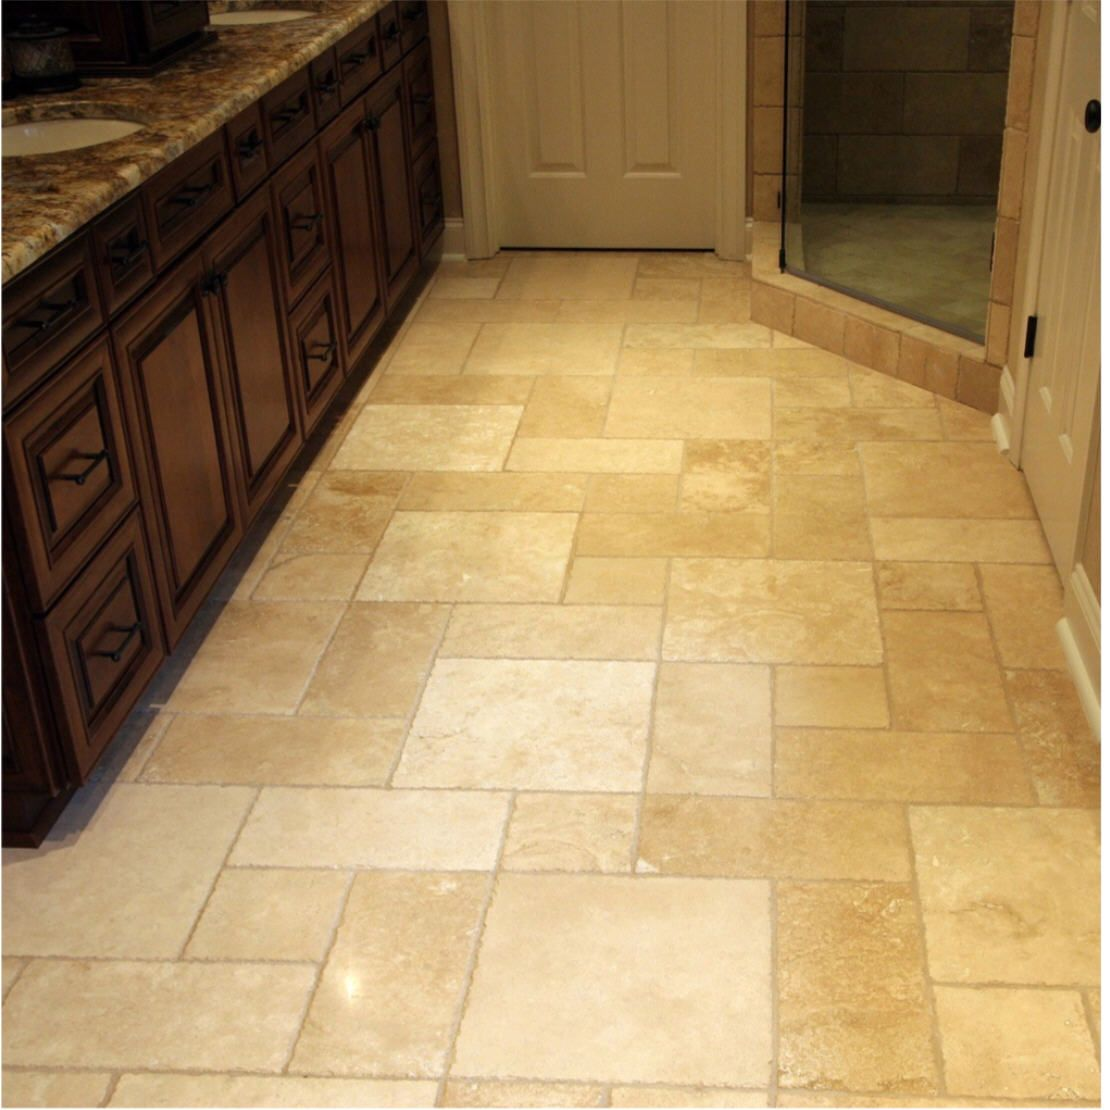 Travertine tile floor pattern called hopscotch for Bathroom flooring options